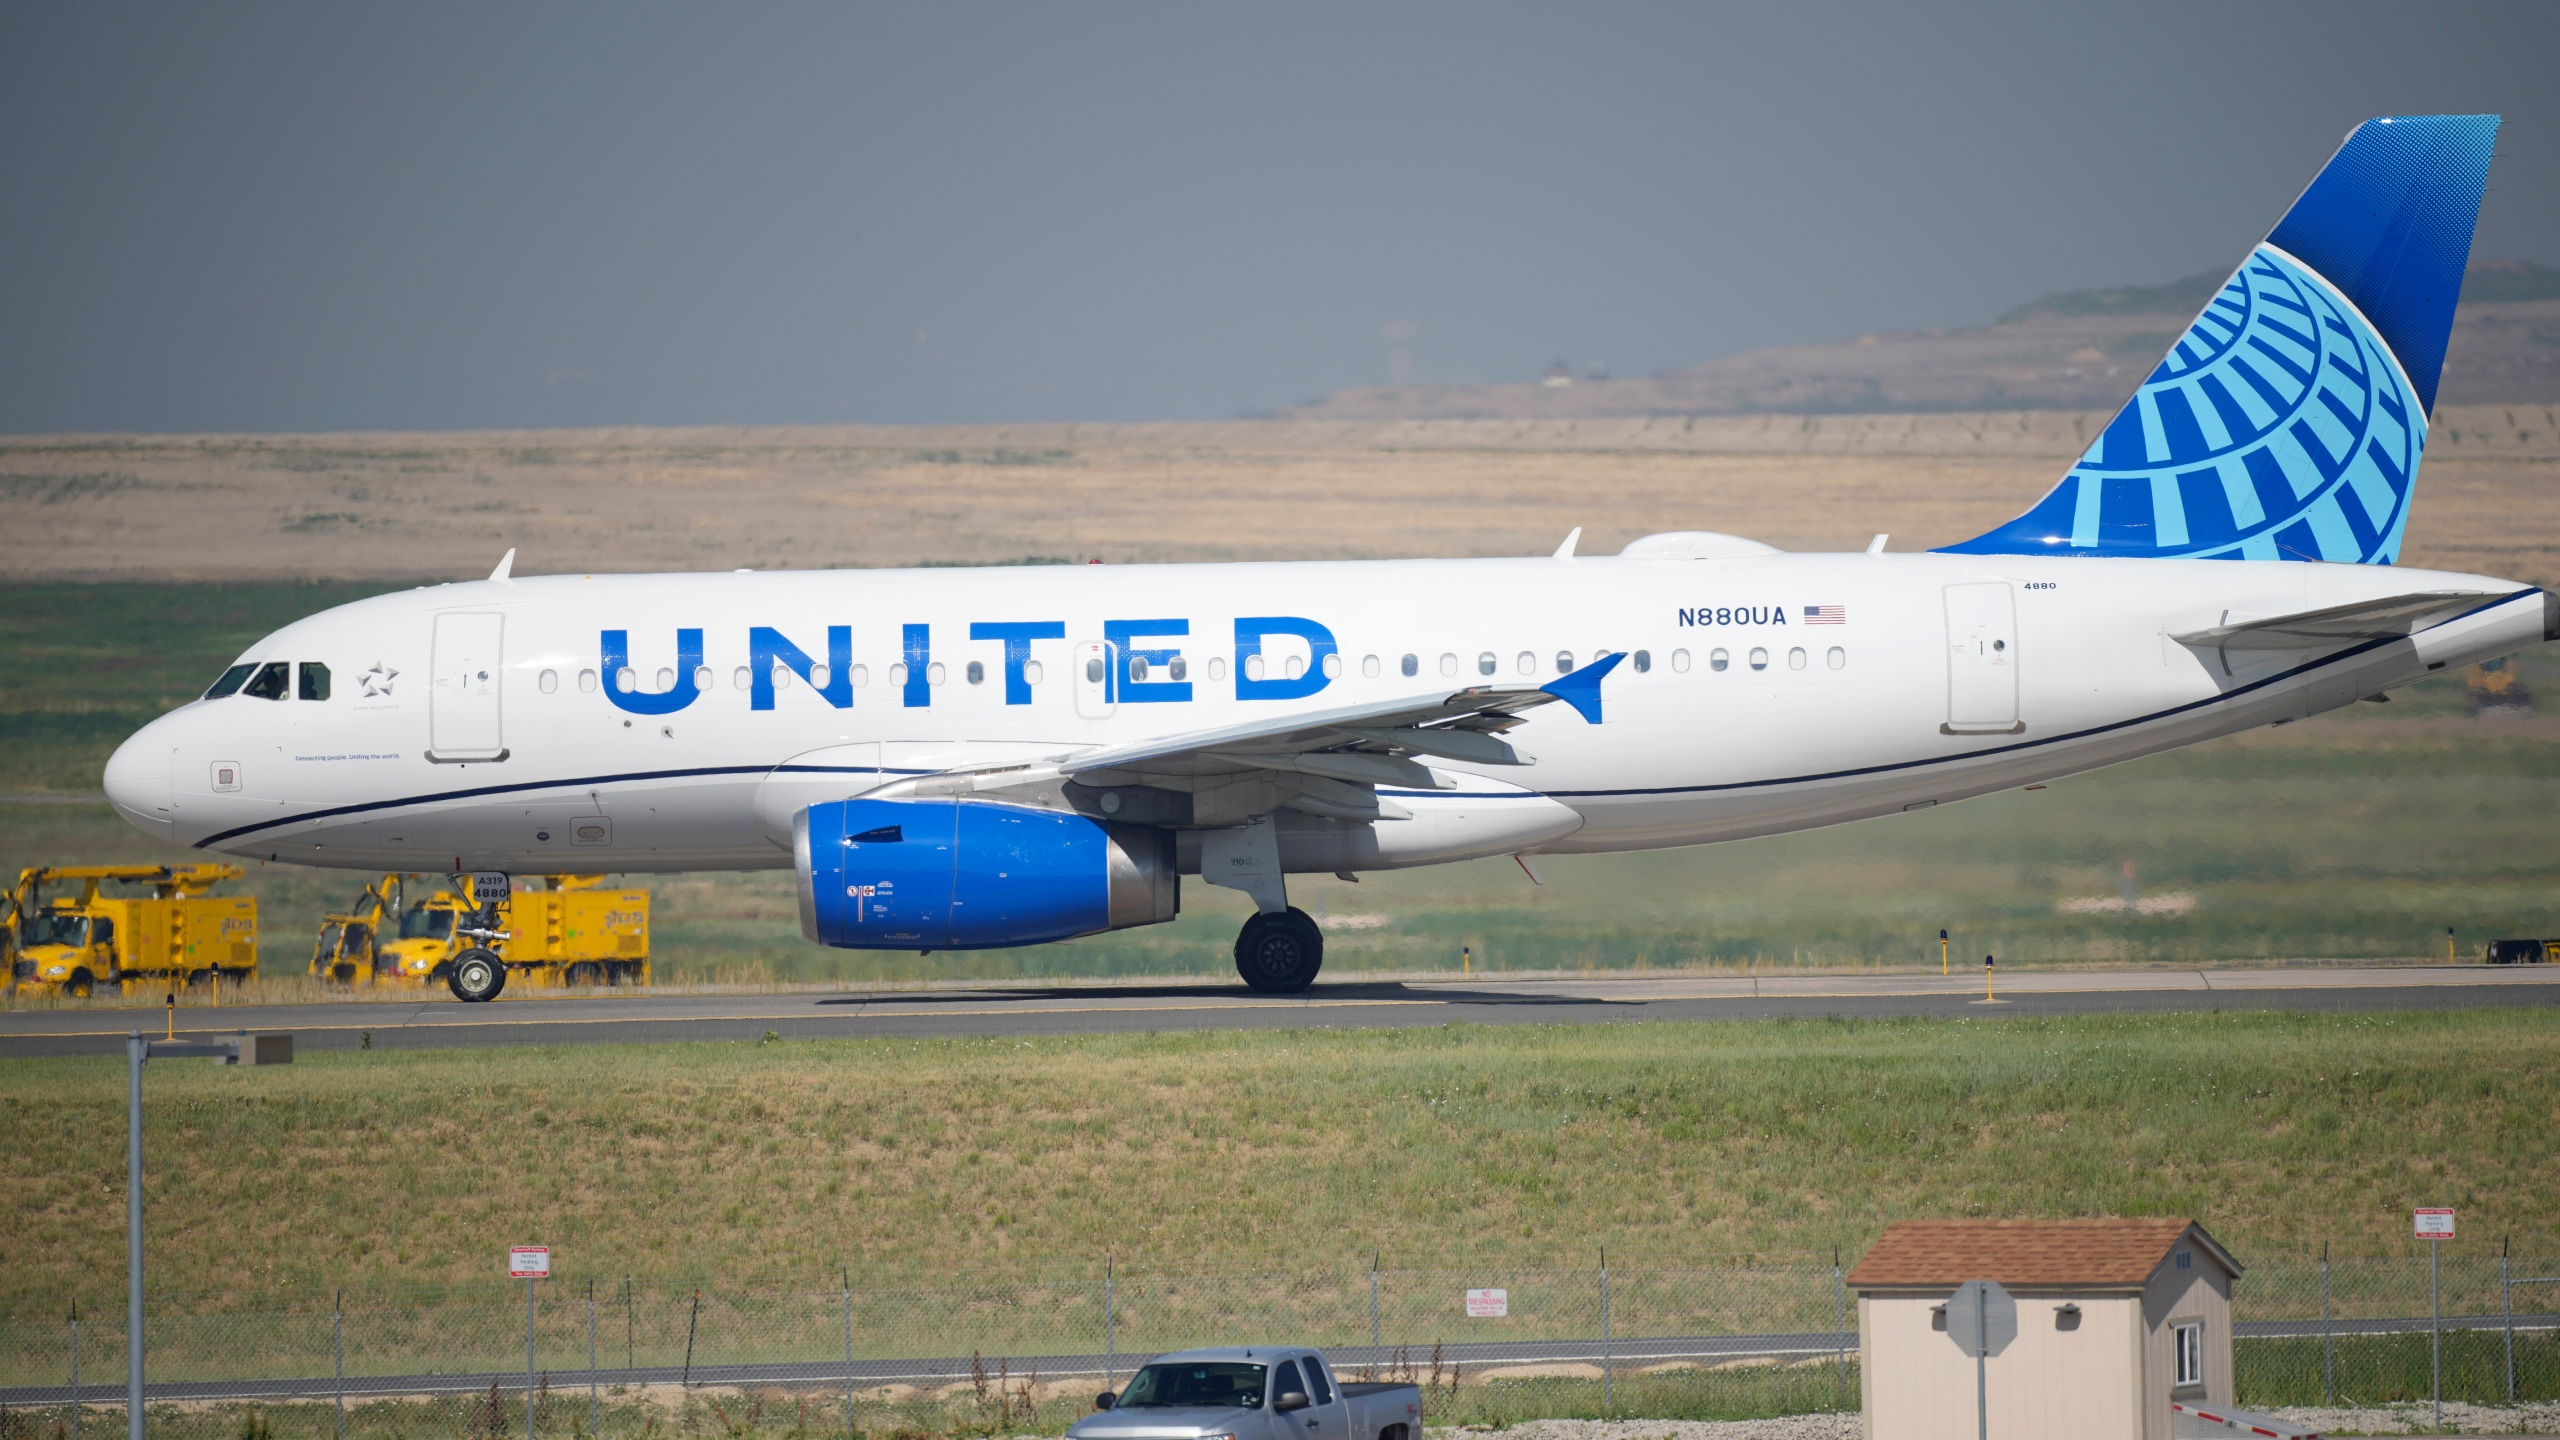 In this July 2, 2021 file photo, a United Airlines jetliner taxis down a runway for take off from Denver International Airport in Denver. The vast majority of United Airlines employees are deciding to get vaccinated against COVID-19 rather than risk losing their job. United said Wednesday, Sept. 22, that more than 97% of its U.S.-based employees are fully vaccinated. (AP Photo/David Zalubowski, file)